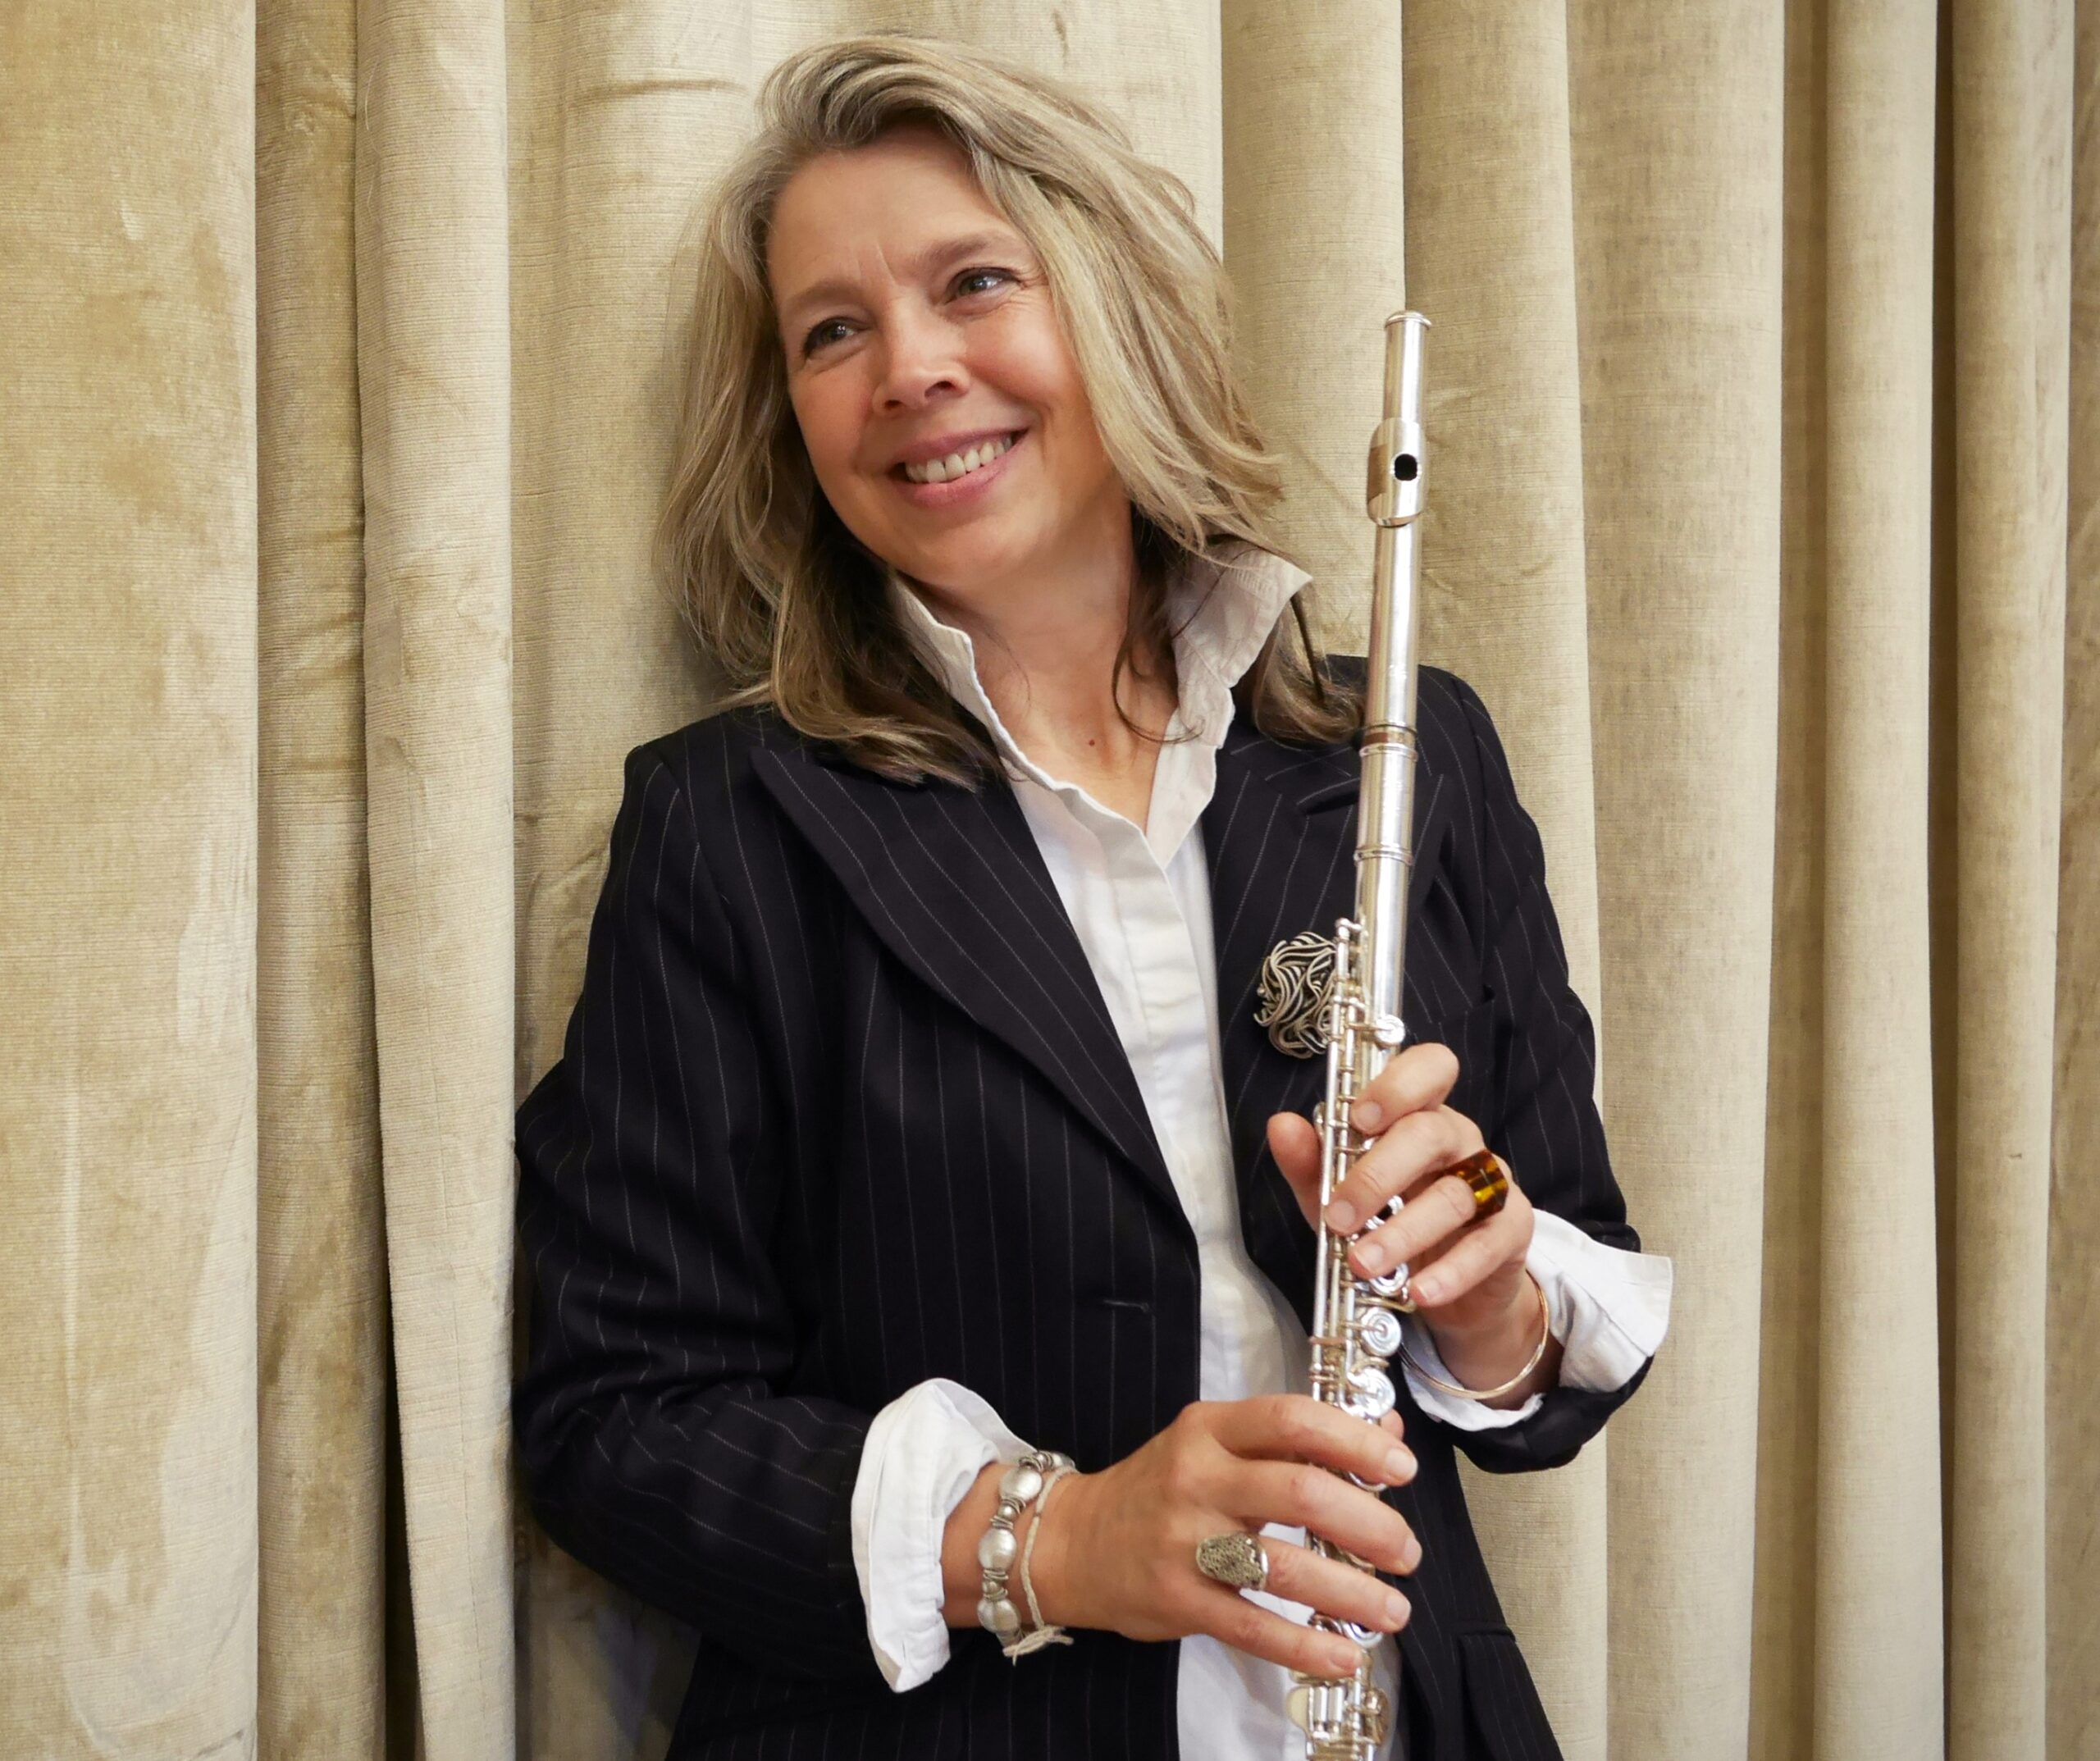 Flute with Karen Jones